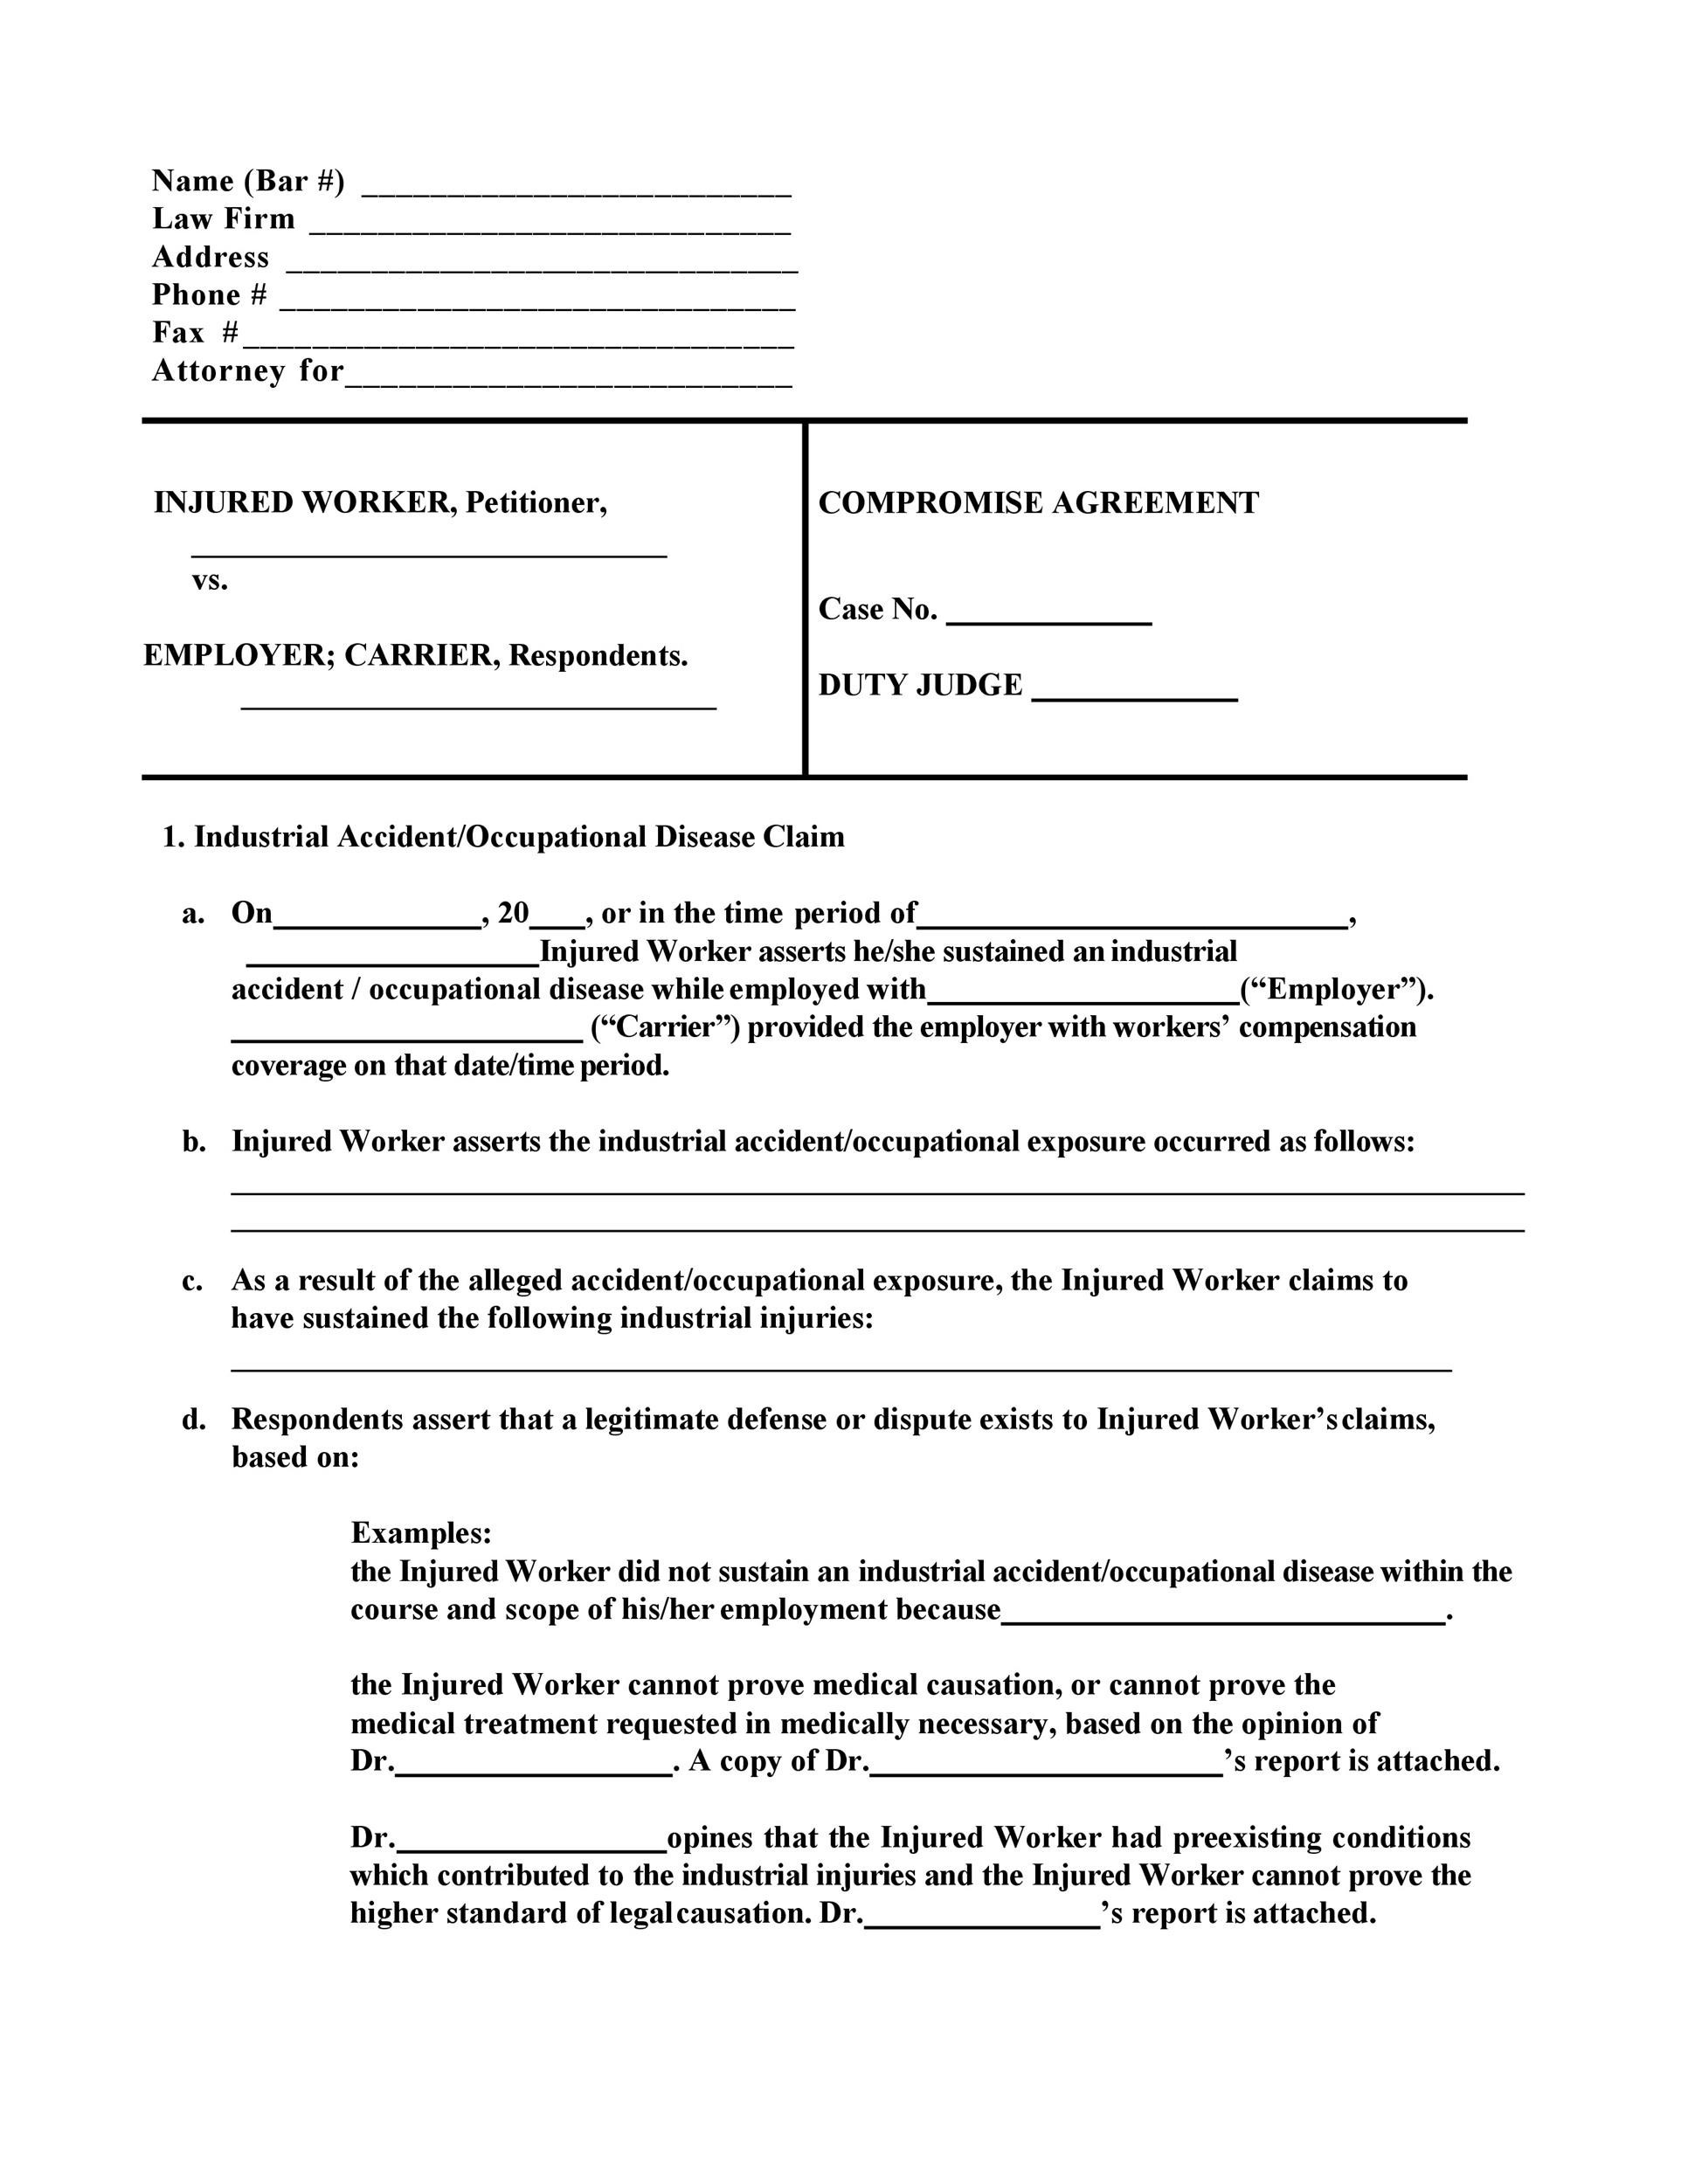 Free settlement agreement 40